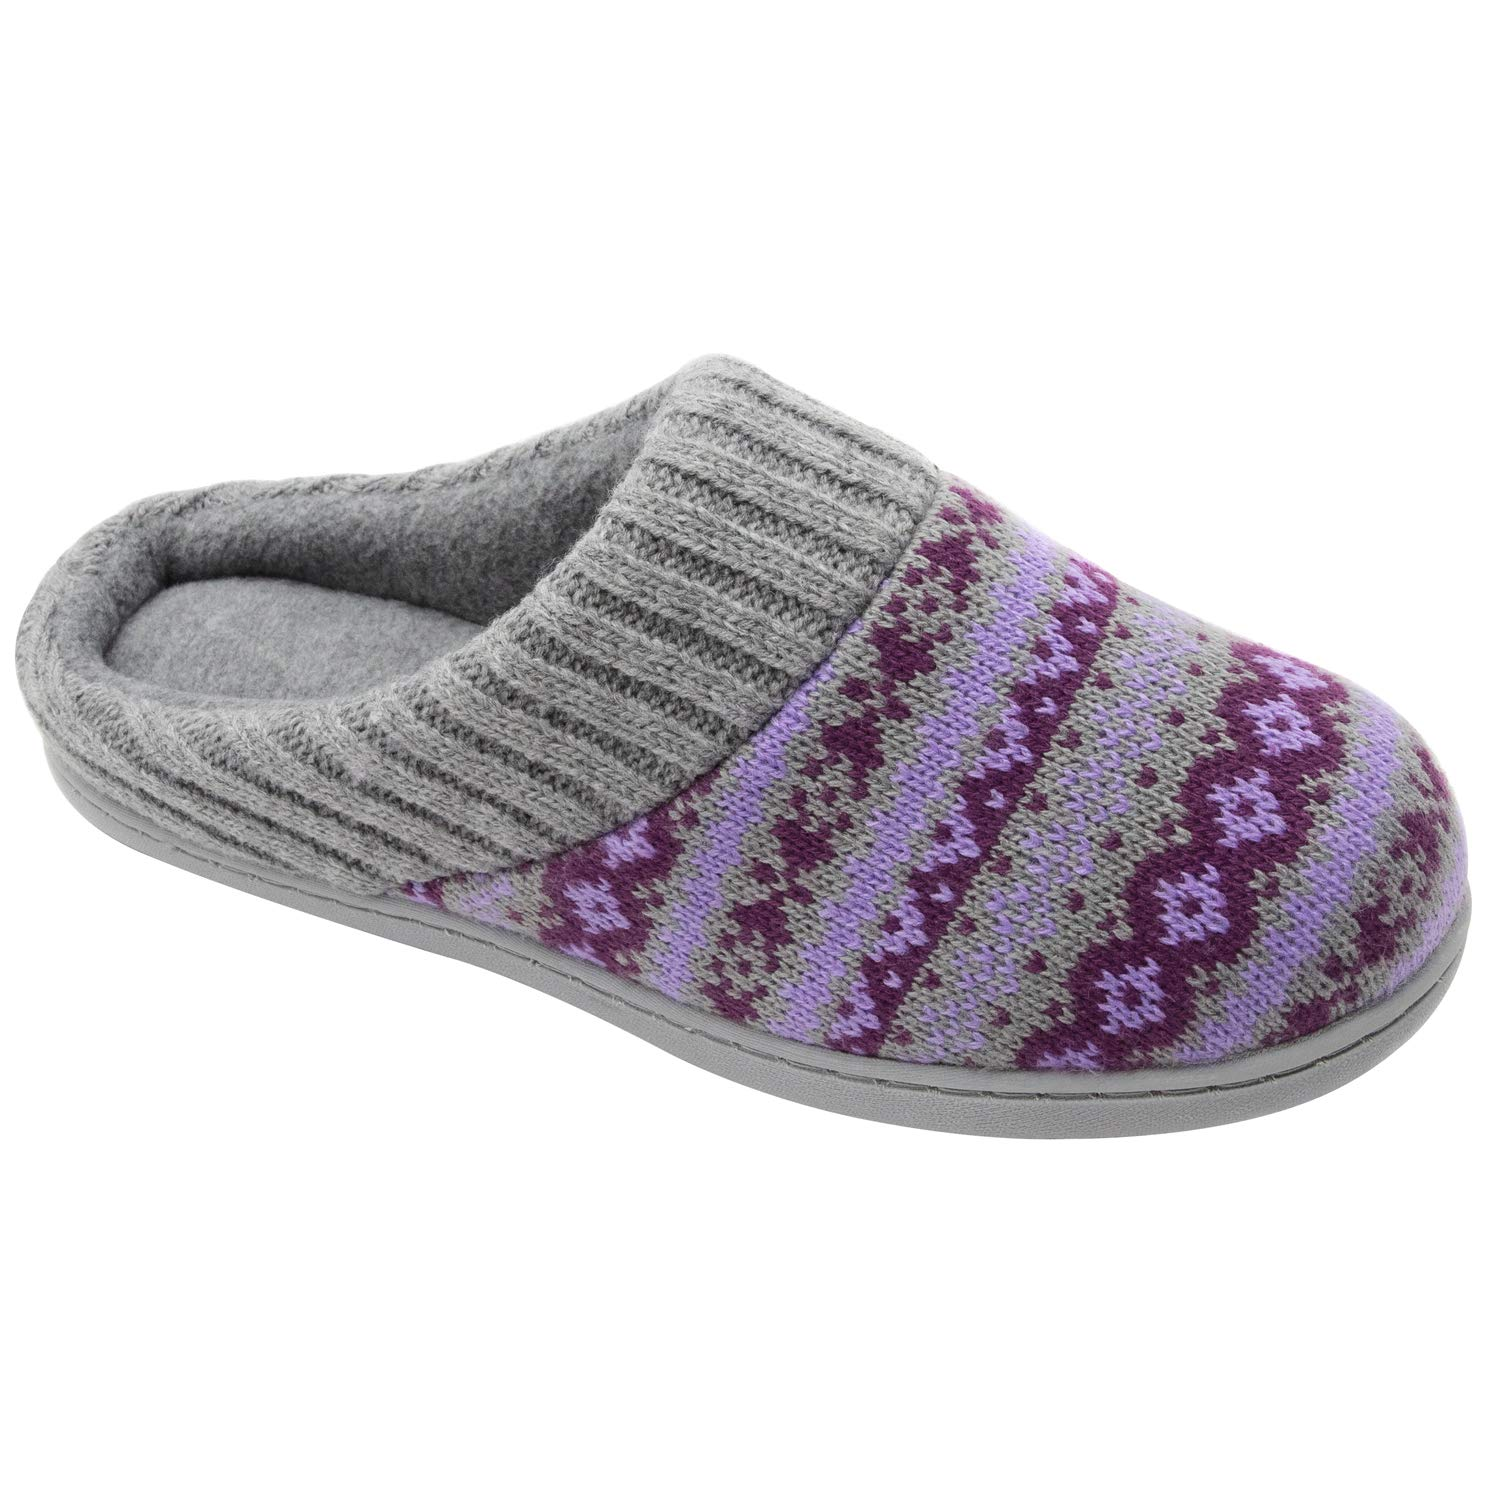 RockDove Sweater Knit Scuff Slippers for Women (9-10 B(M) US, Periwinkle)